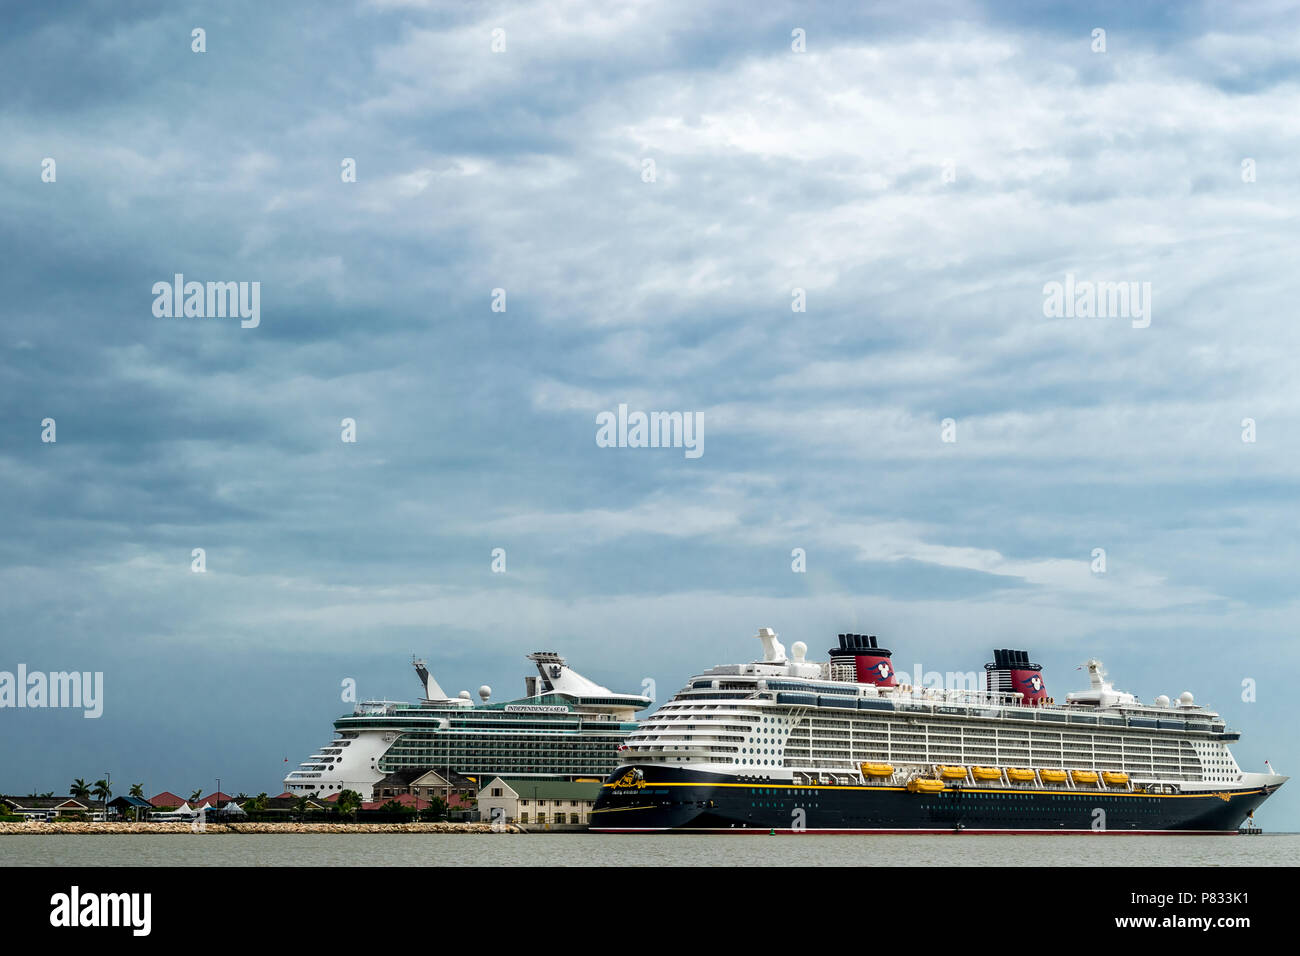 Falmouth, Jamaica - June 03 2015: Disney Fantasy and Royal Caribbean Independence of the Seas cruise ships docked side by side at the Falmouth Cruise - Stock Image